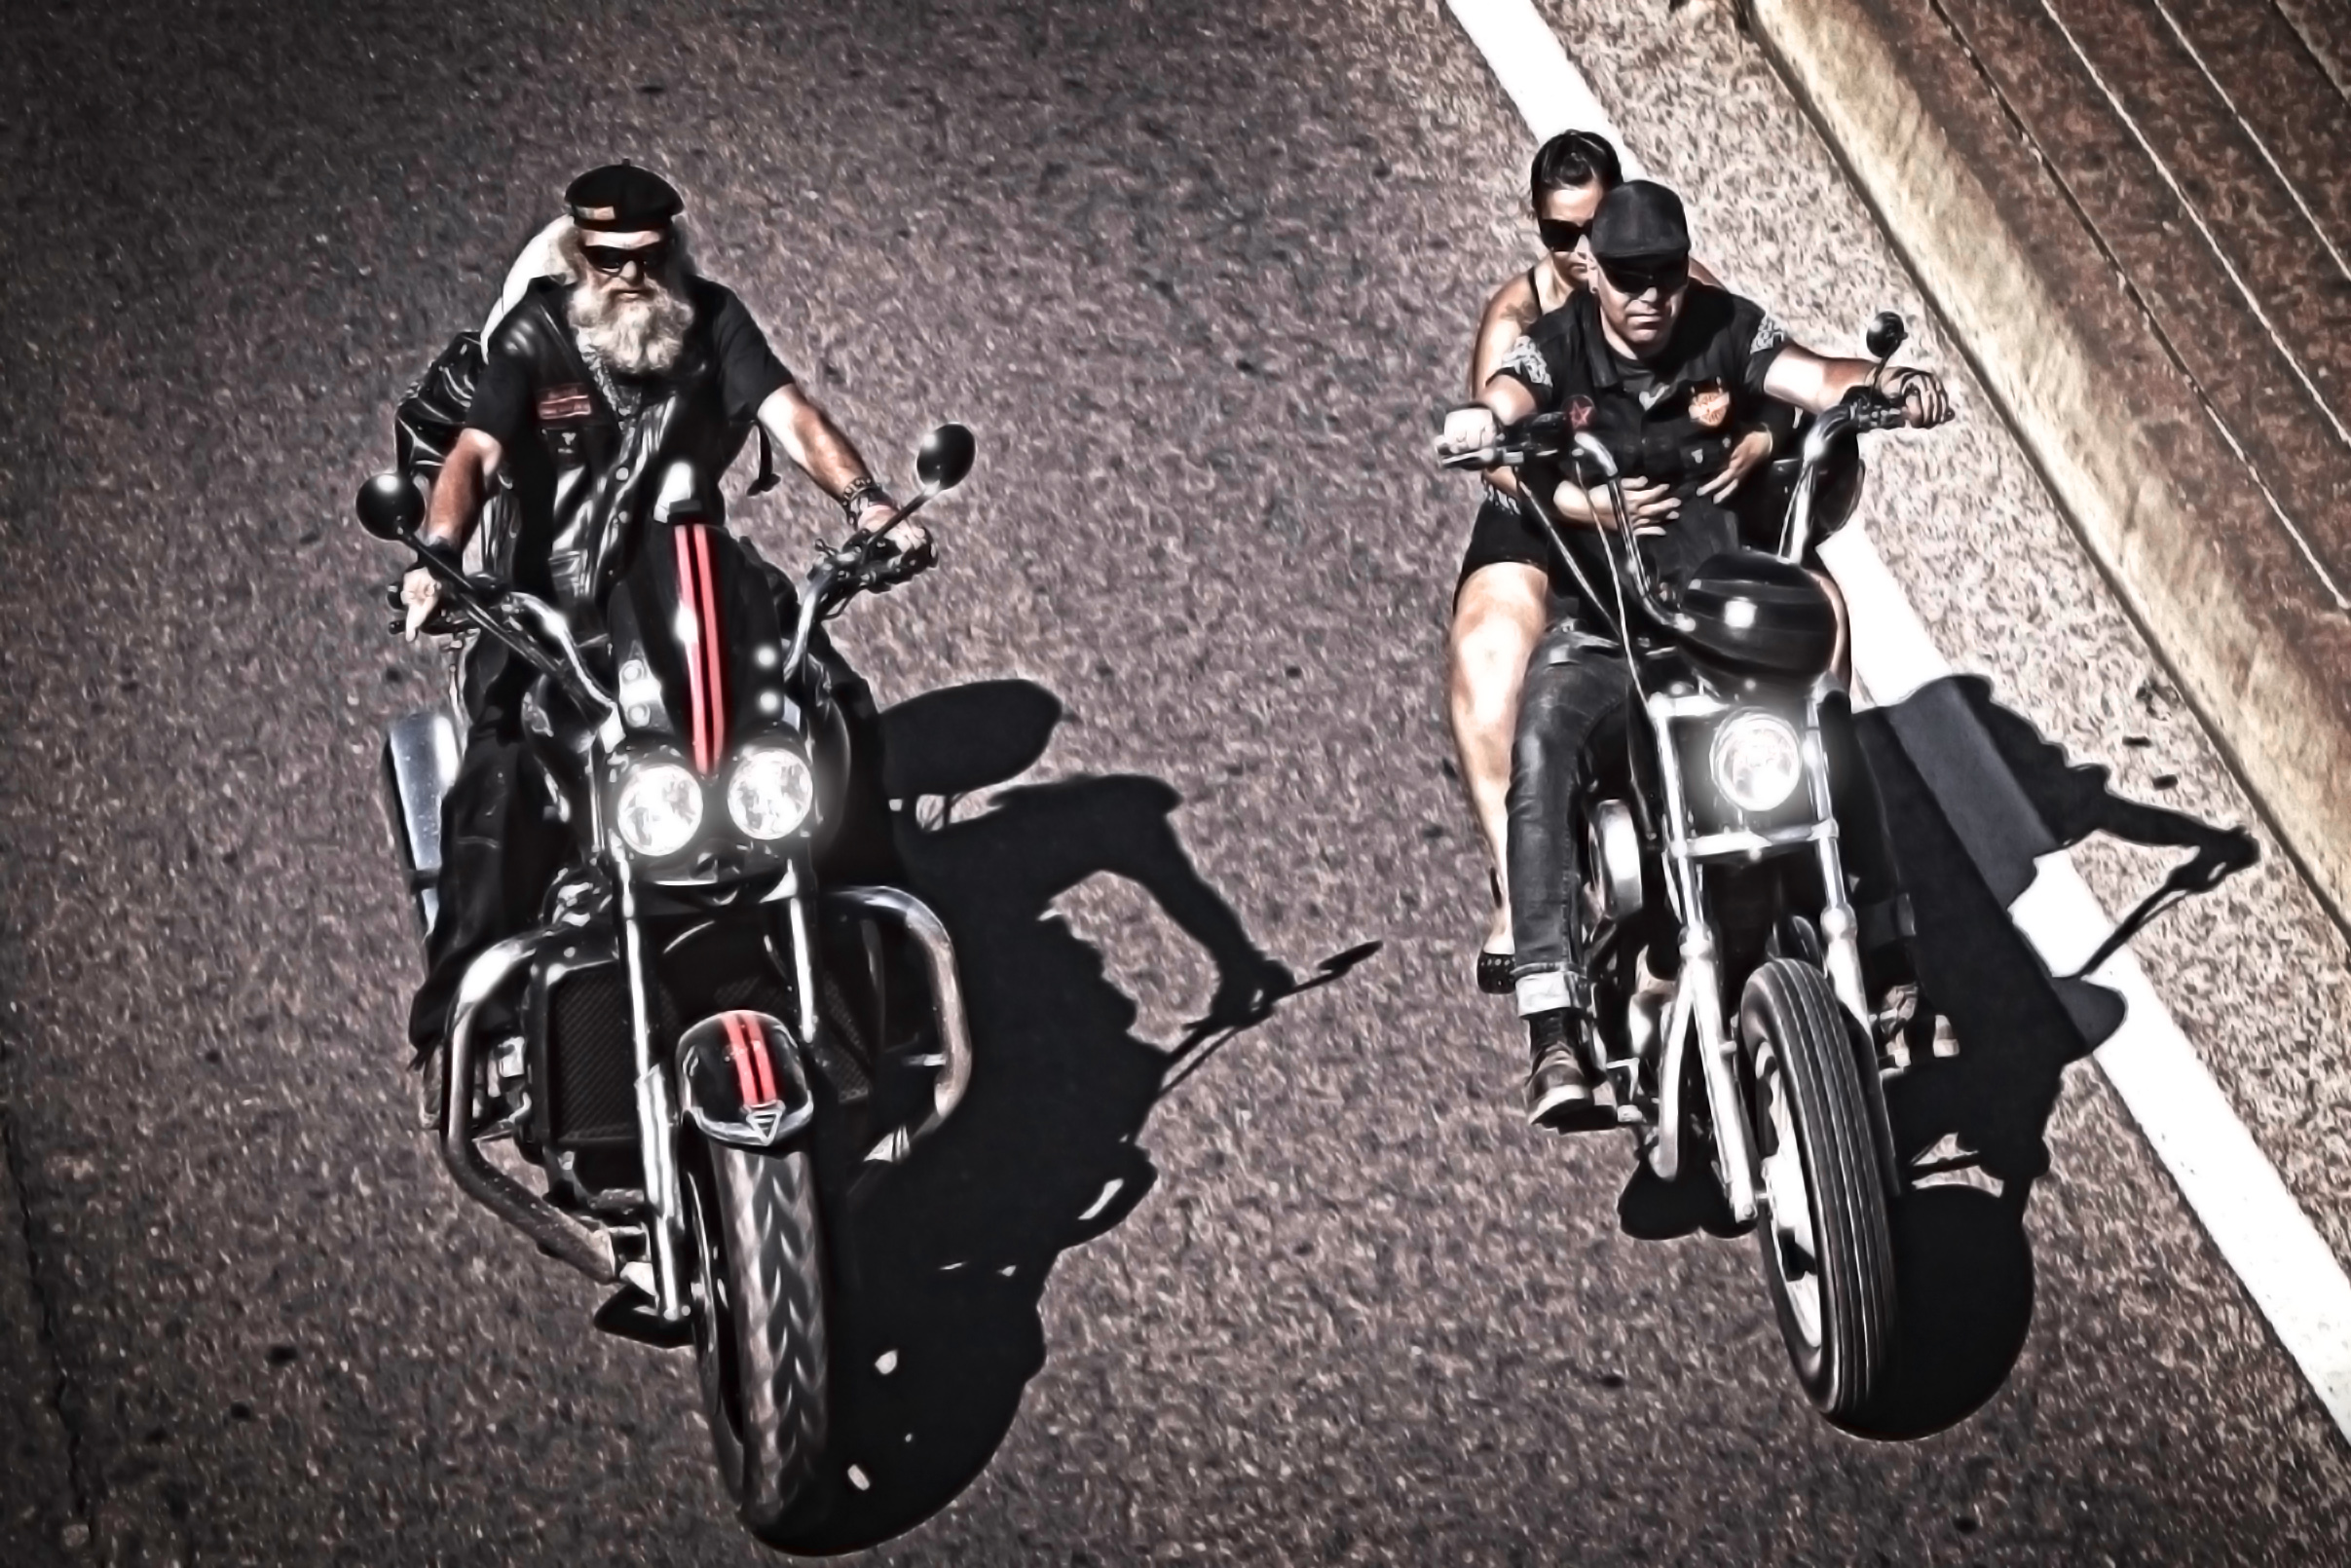 Two generations of bikers riding chopper photo